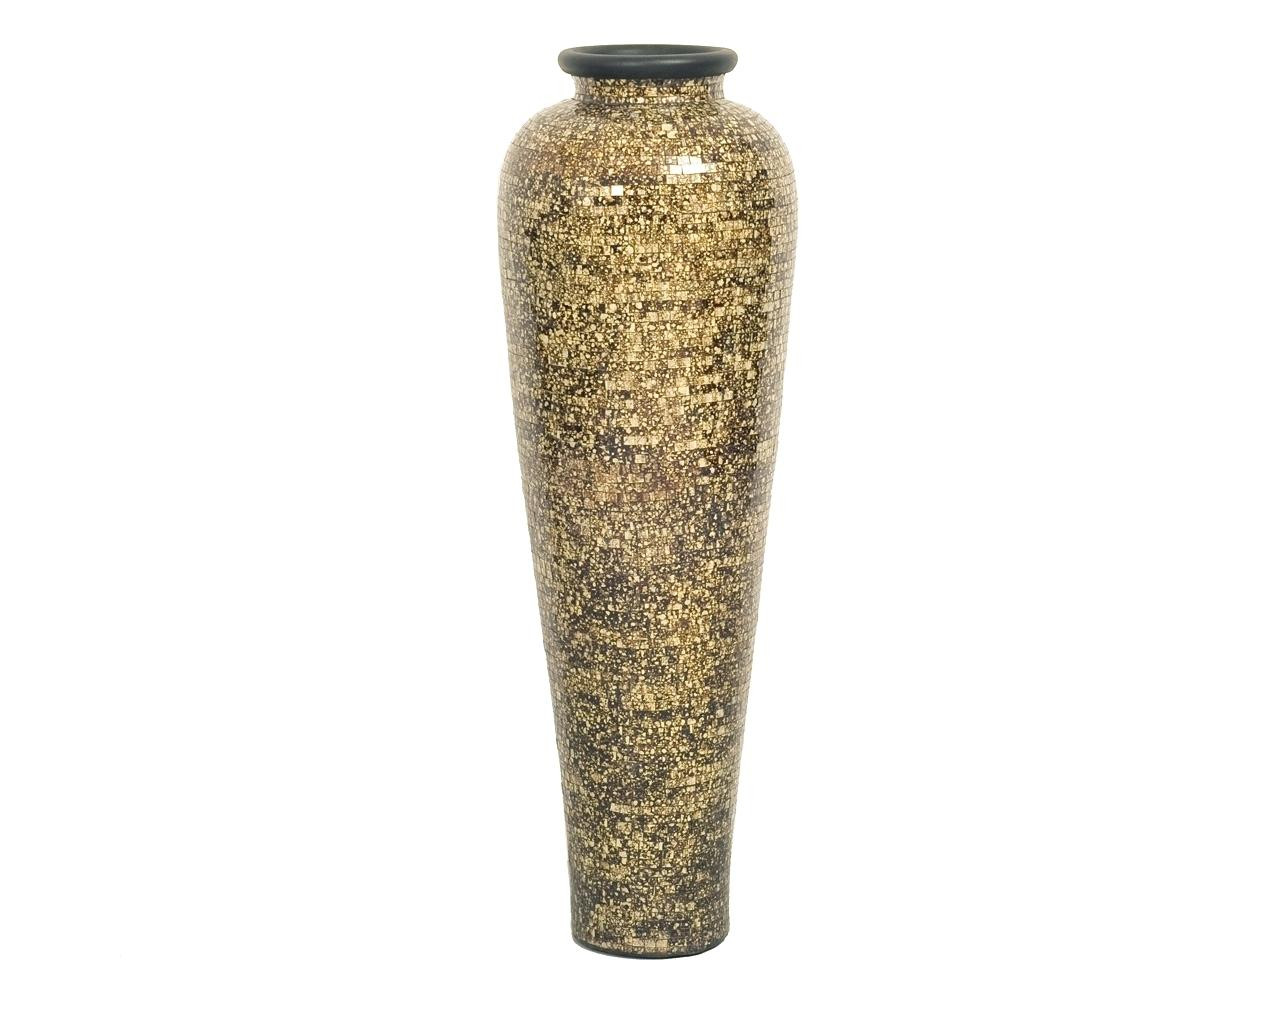 asian vases for sale of large floor vase 00cm pir m ideas vases for cheap ebay in large floor vase vases uk for sale chinese large floor vase ceramic vases for sale